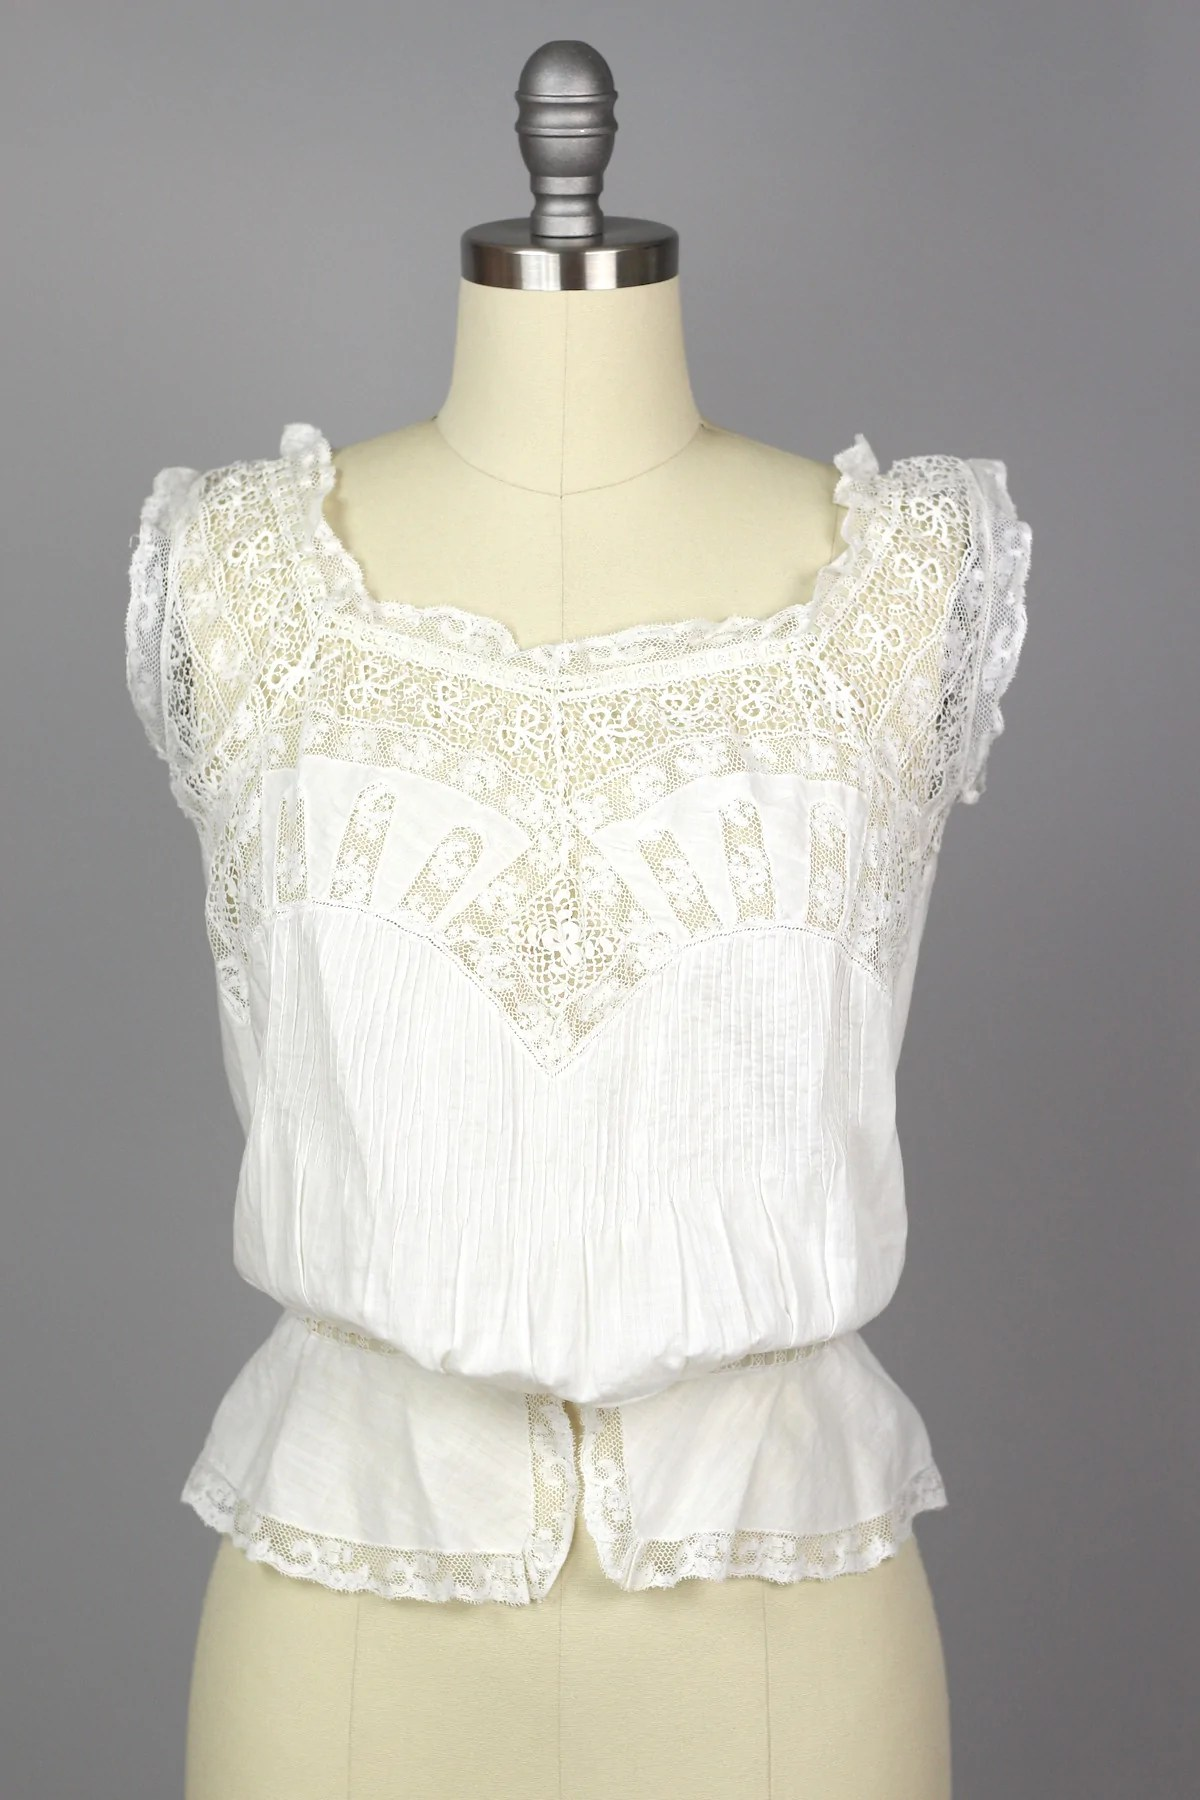 Victorian Antique Entirely Handmade White Lace Corset